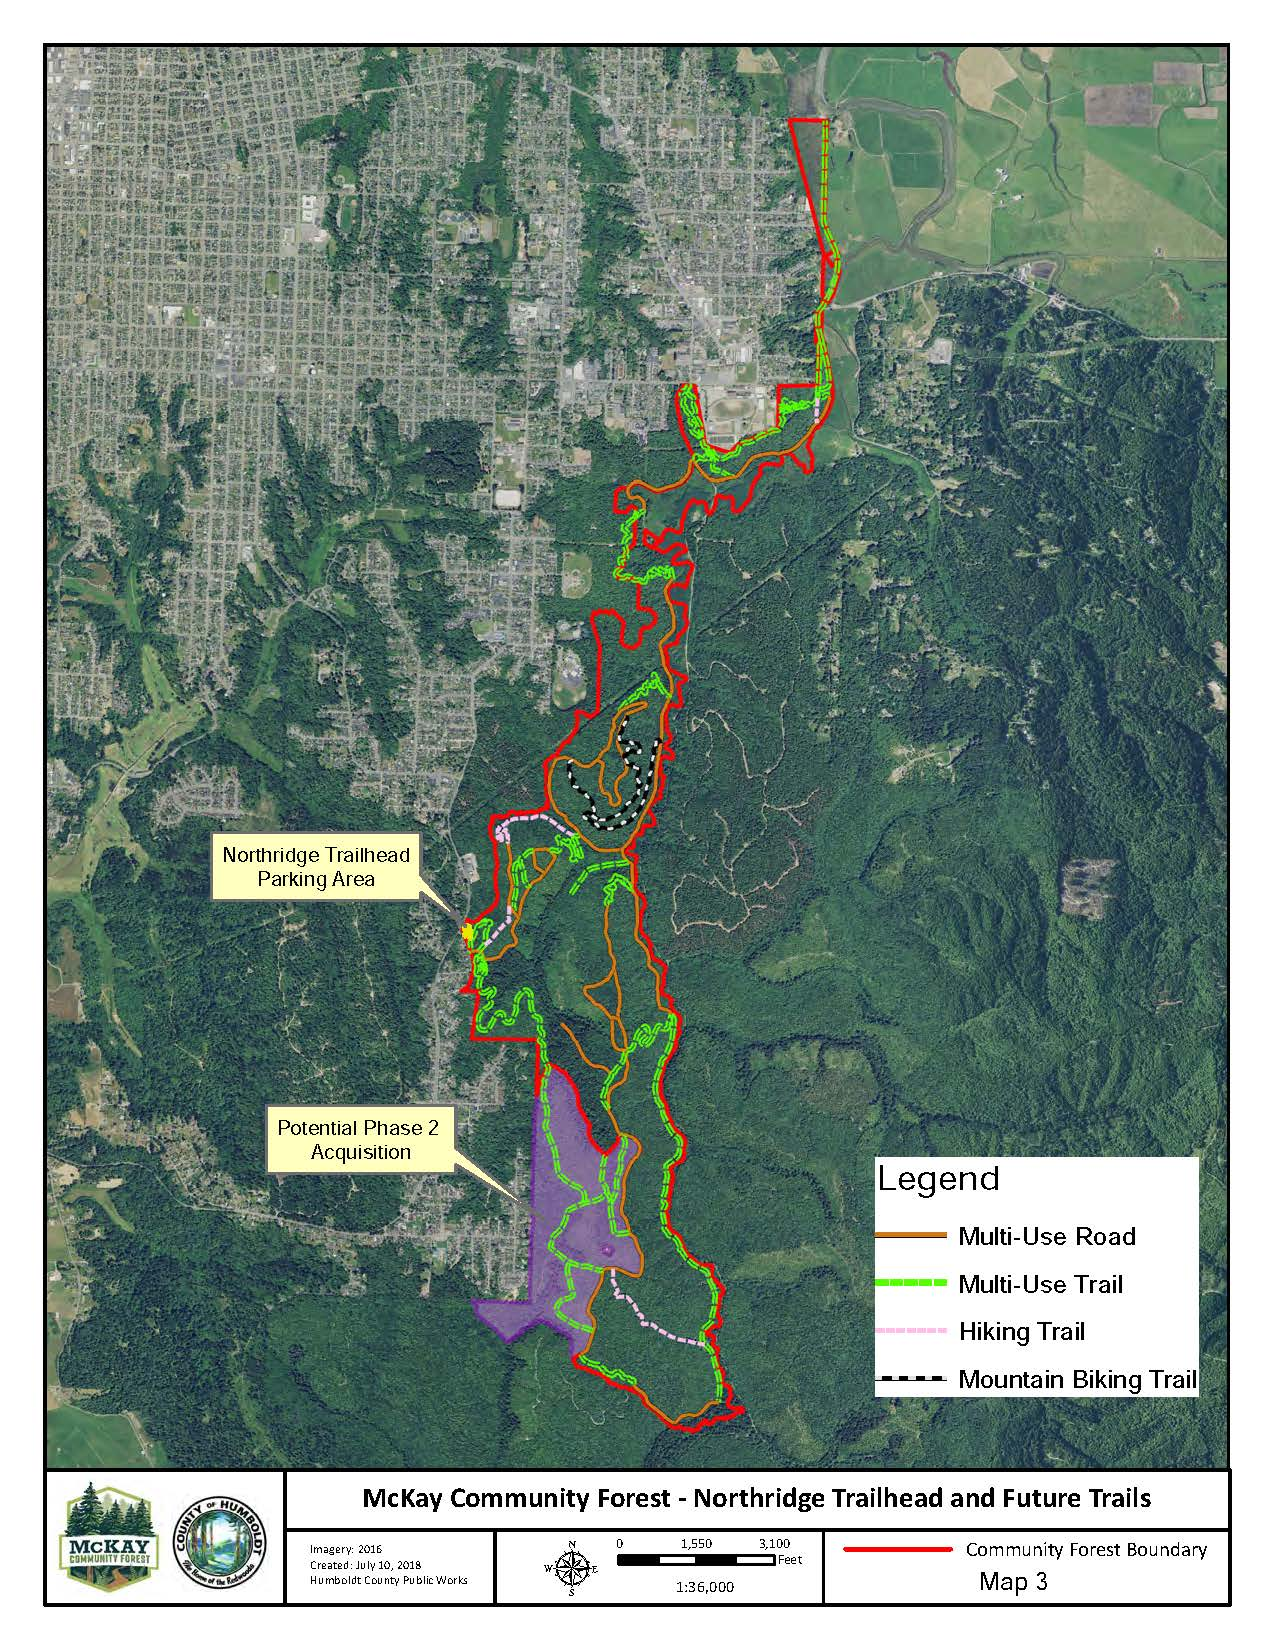 McKay Community Forest Map showing all future trails, including a mountain biking trail, as well as